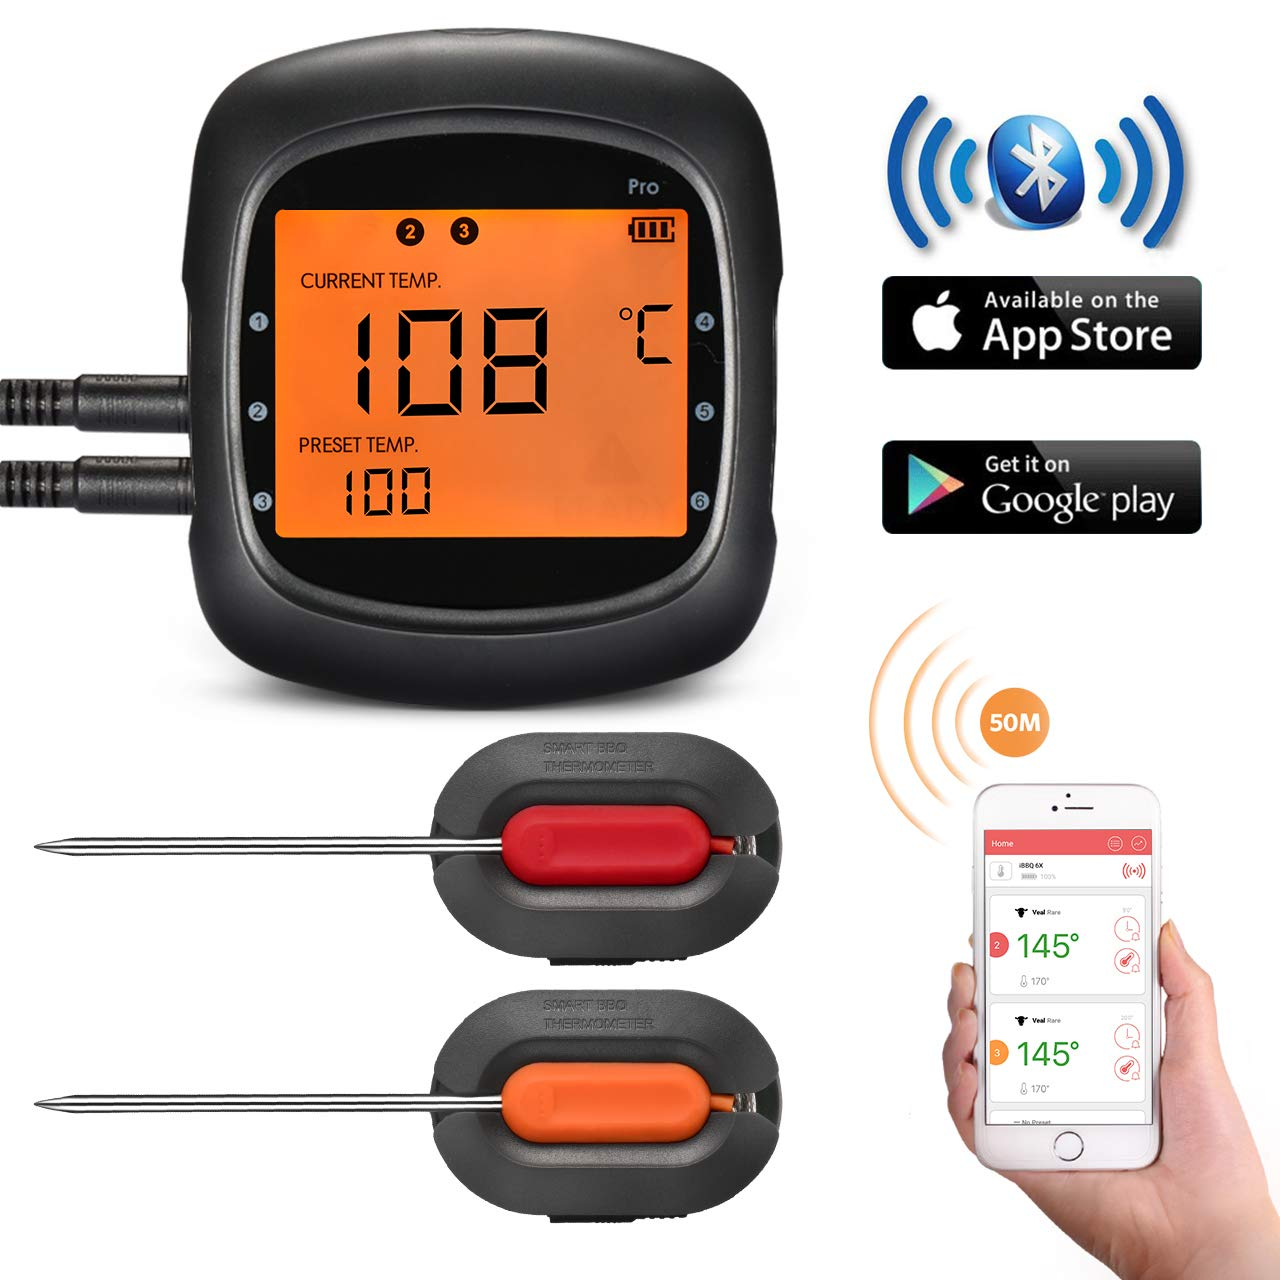 Smart Wireless BBQ Thermometer,TOPELEK Bluetooth Meat Thermometer Remote Digital Cooking Food Thermometer With Large Backlit Display,Instant Read-Out,Magnetic Mounting Design,2 Probes,Alarm Monitor for Kitchen,Grill, BBQ,Steak,Turkey for IOS & Android